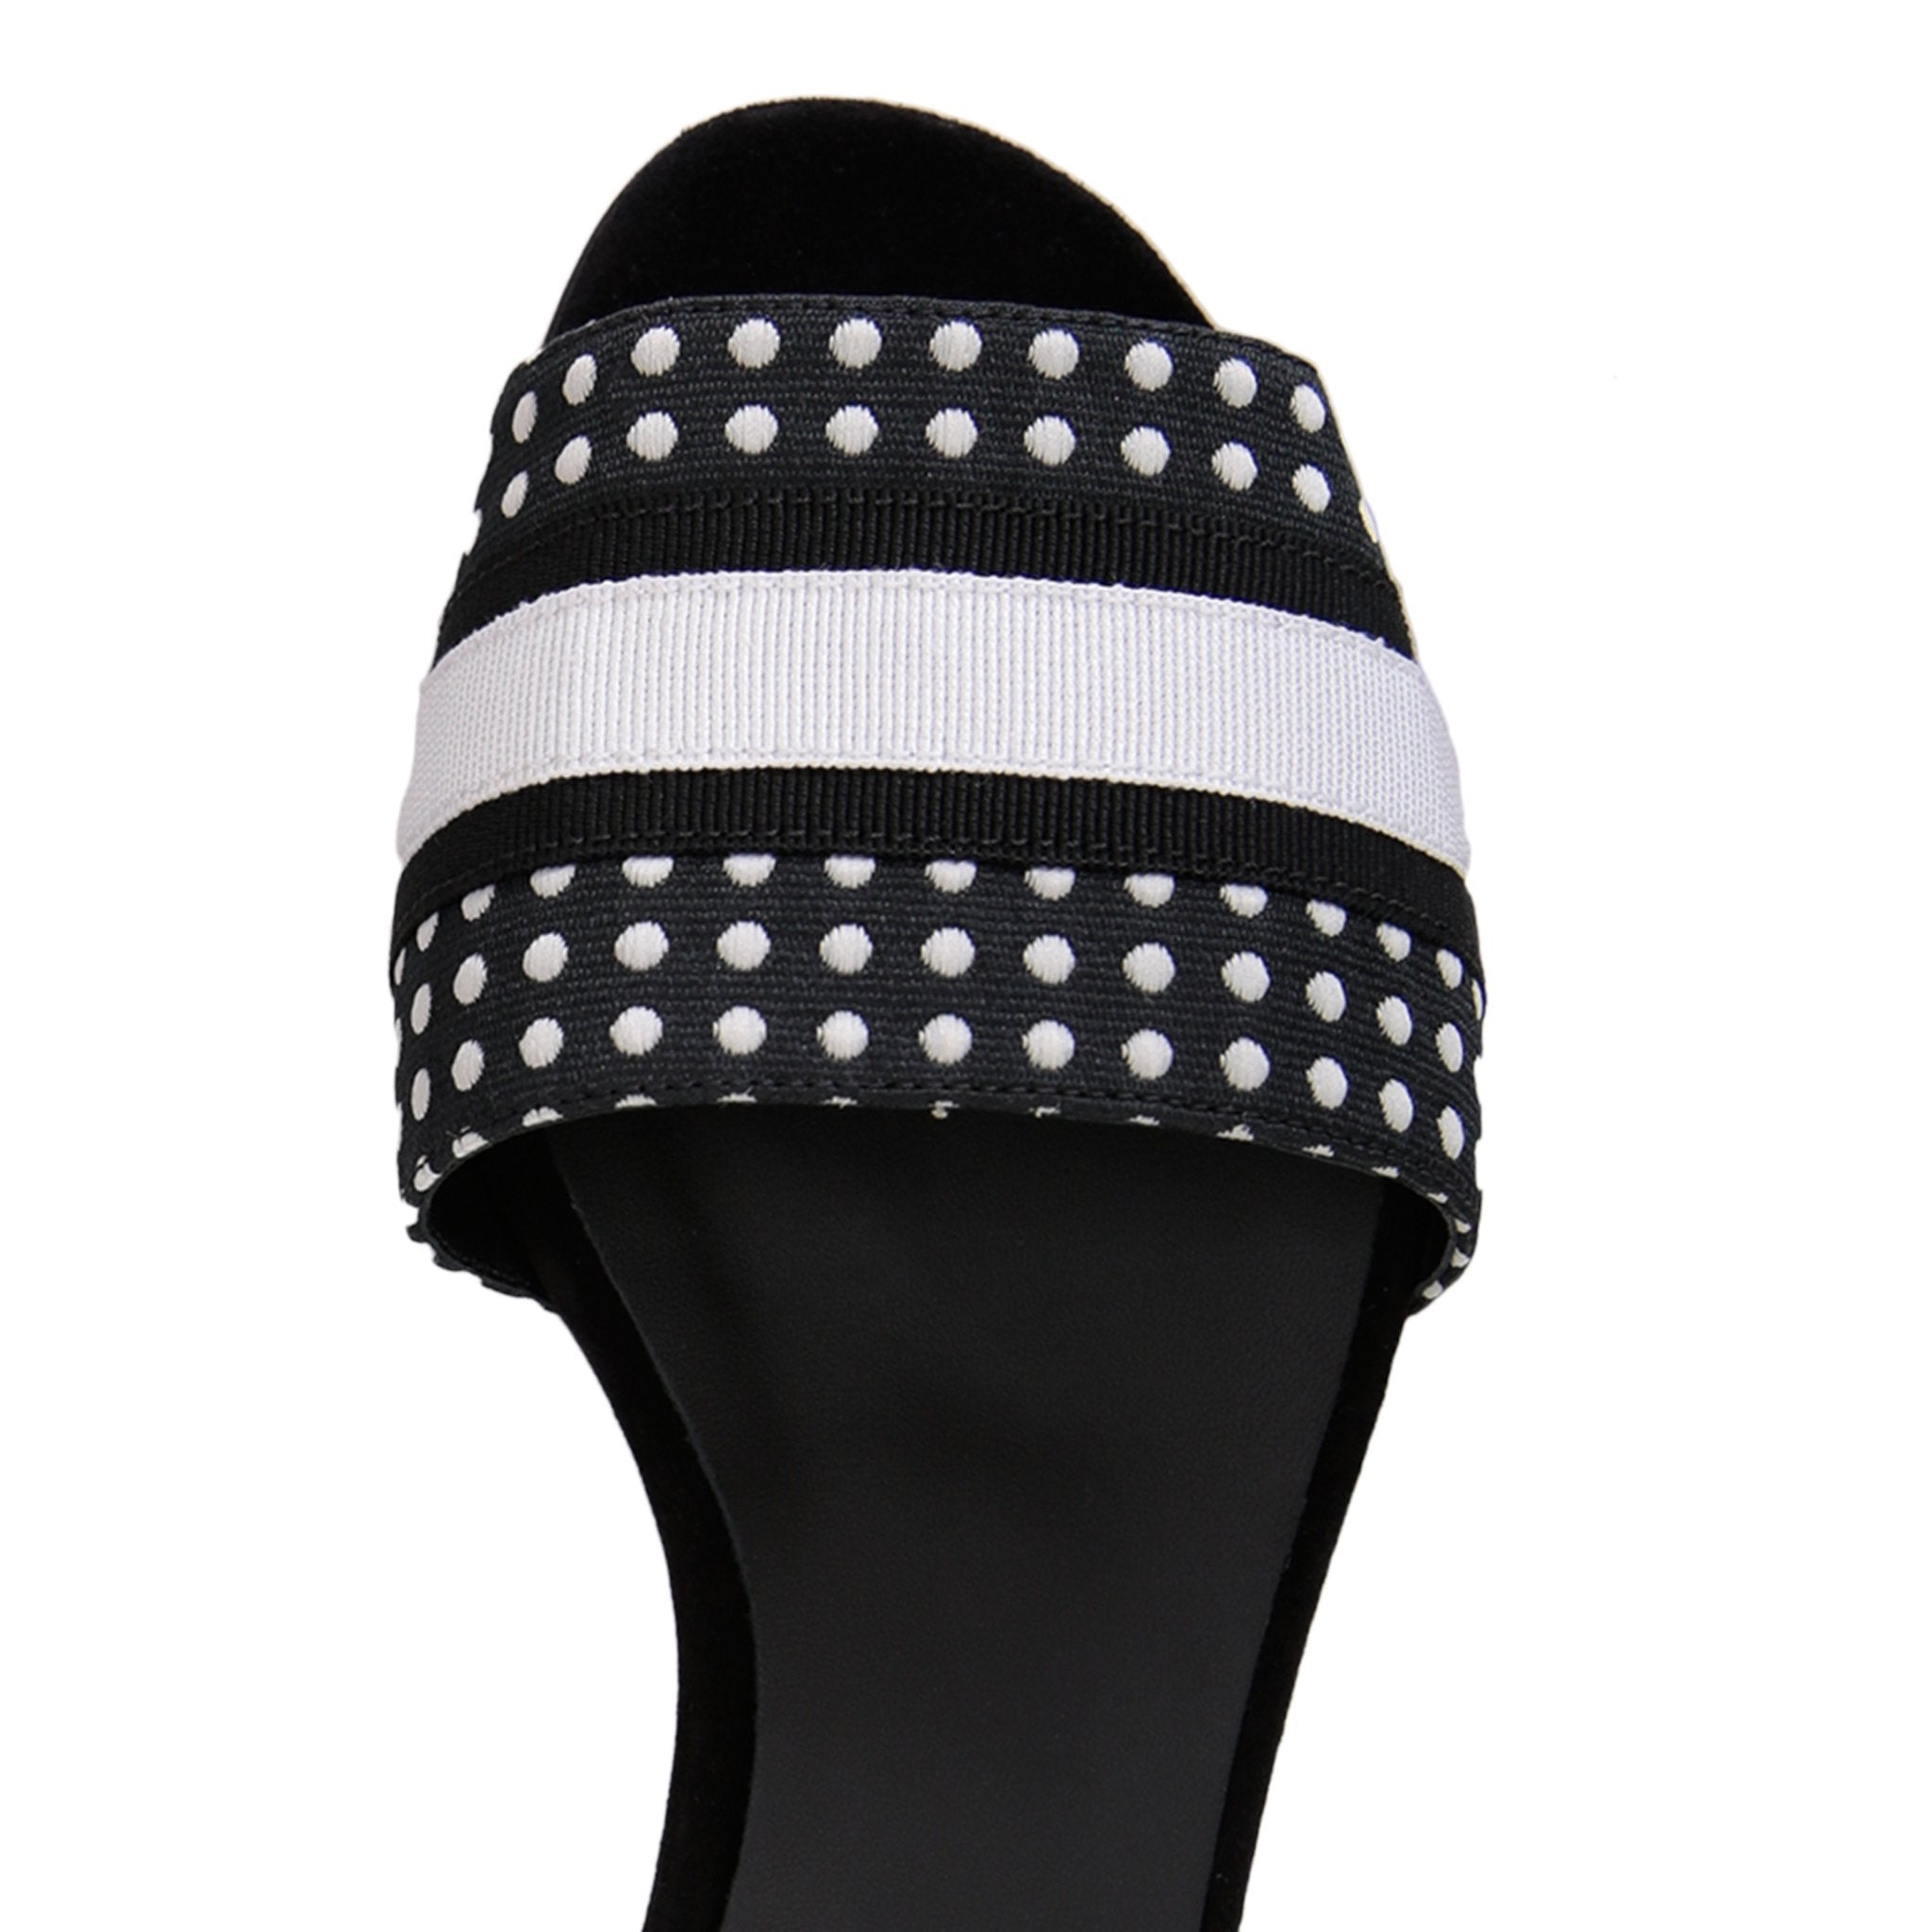 SICILY - Textile Polka Dot Black and White, VIAJIYU - Women's Hand Made Sustainable Luxury Shoes. Made in Italy. Made to Order.